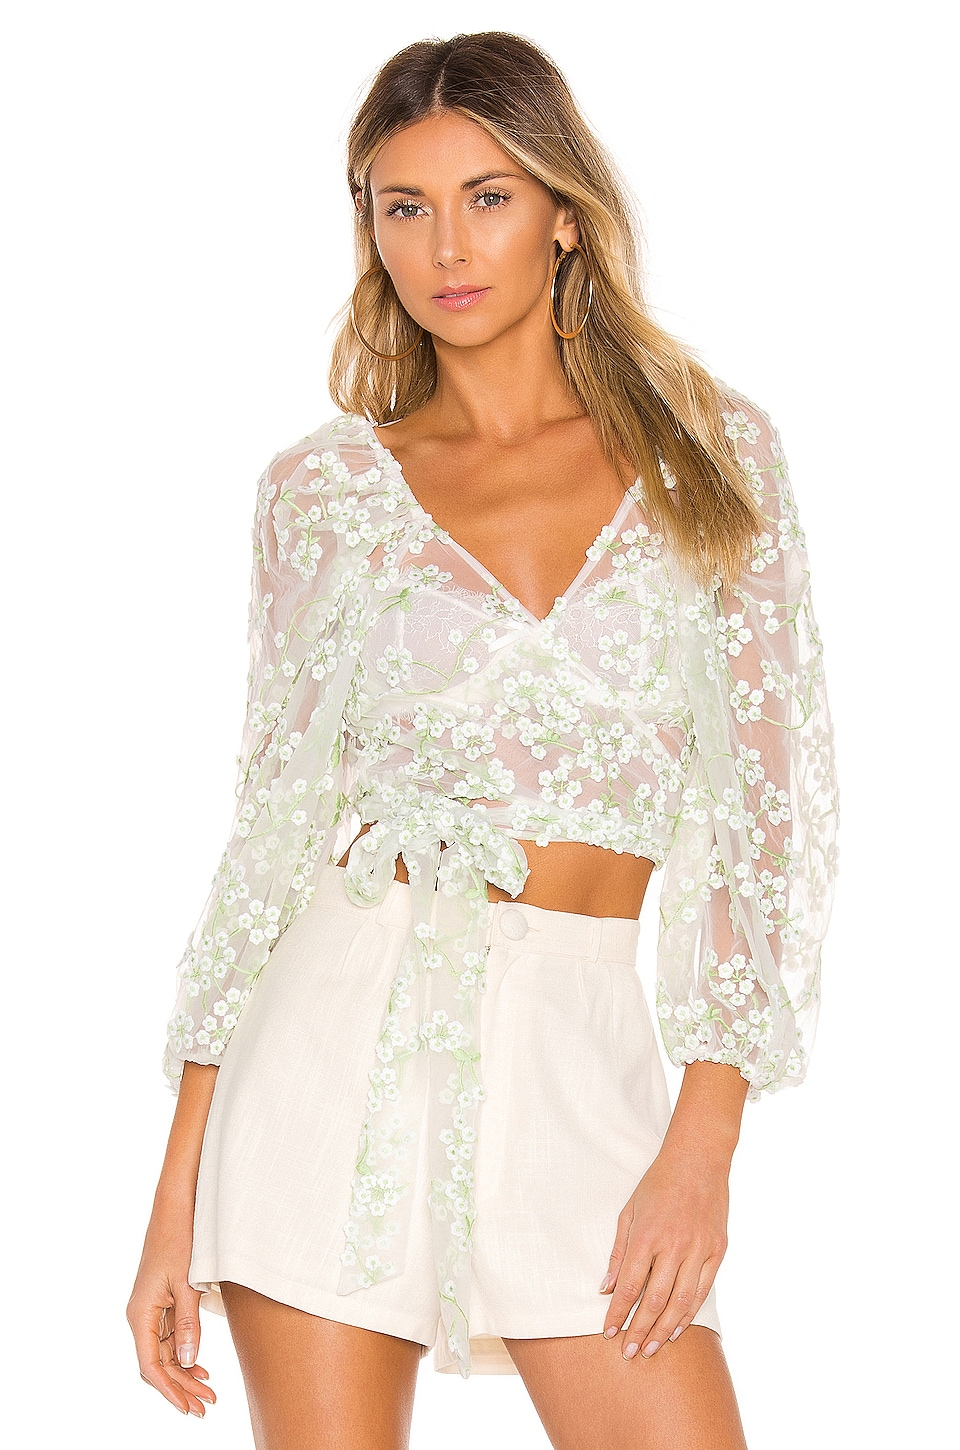 For Love & Lemons Eclair Crop Top en Ivory Floral